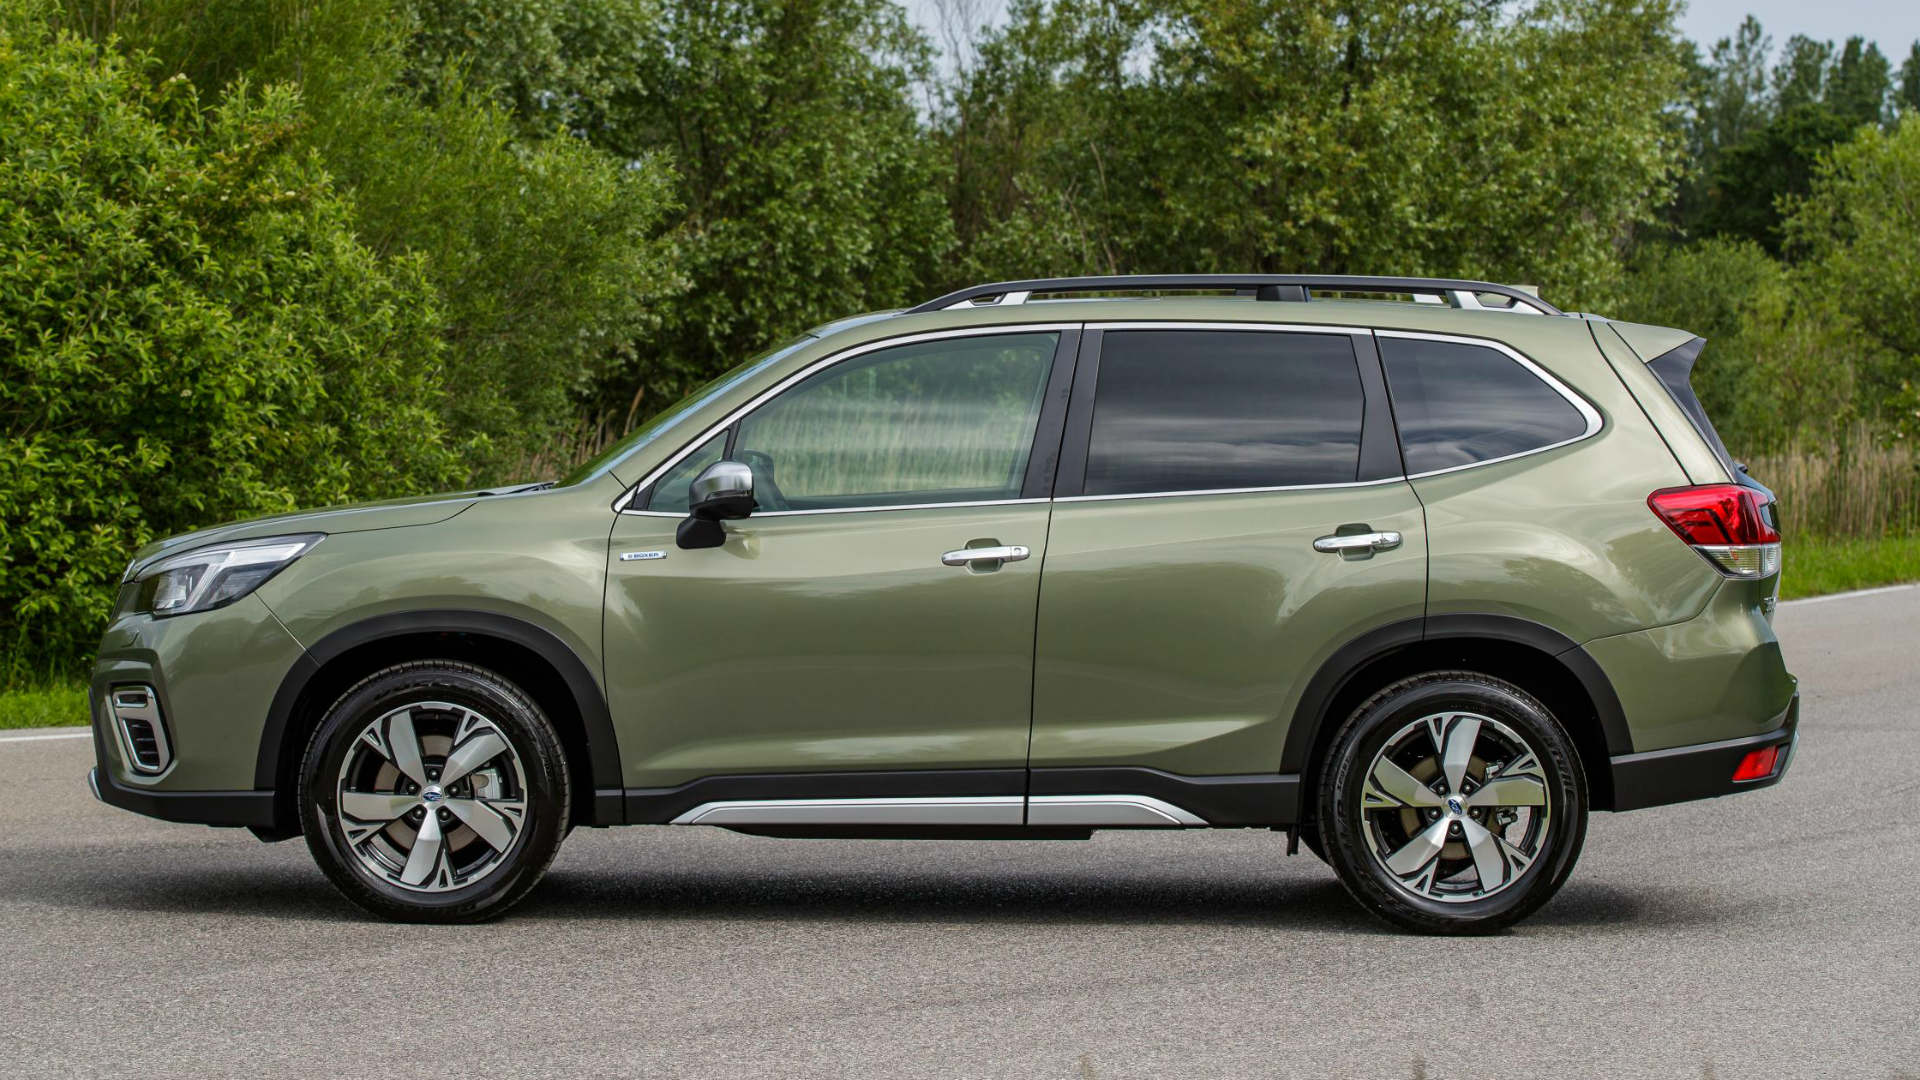 New Subaru Forester hybrid